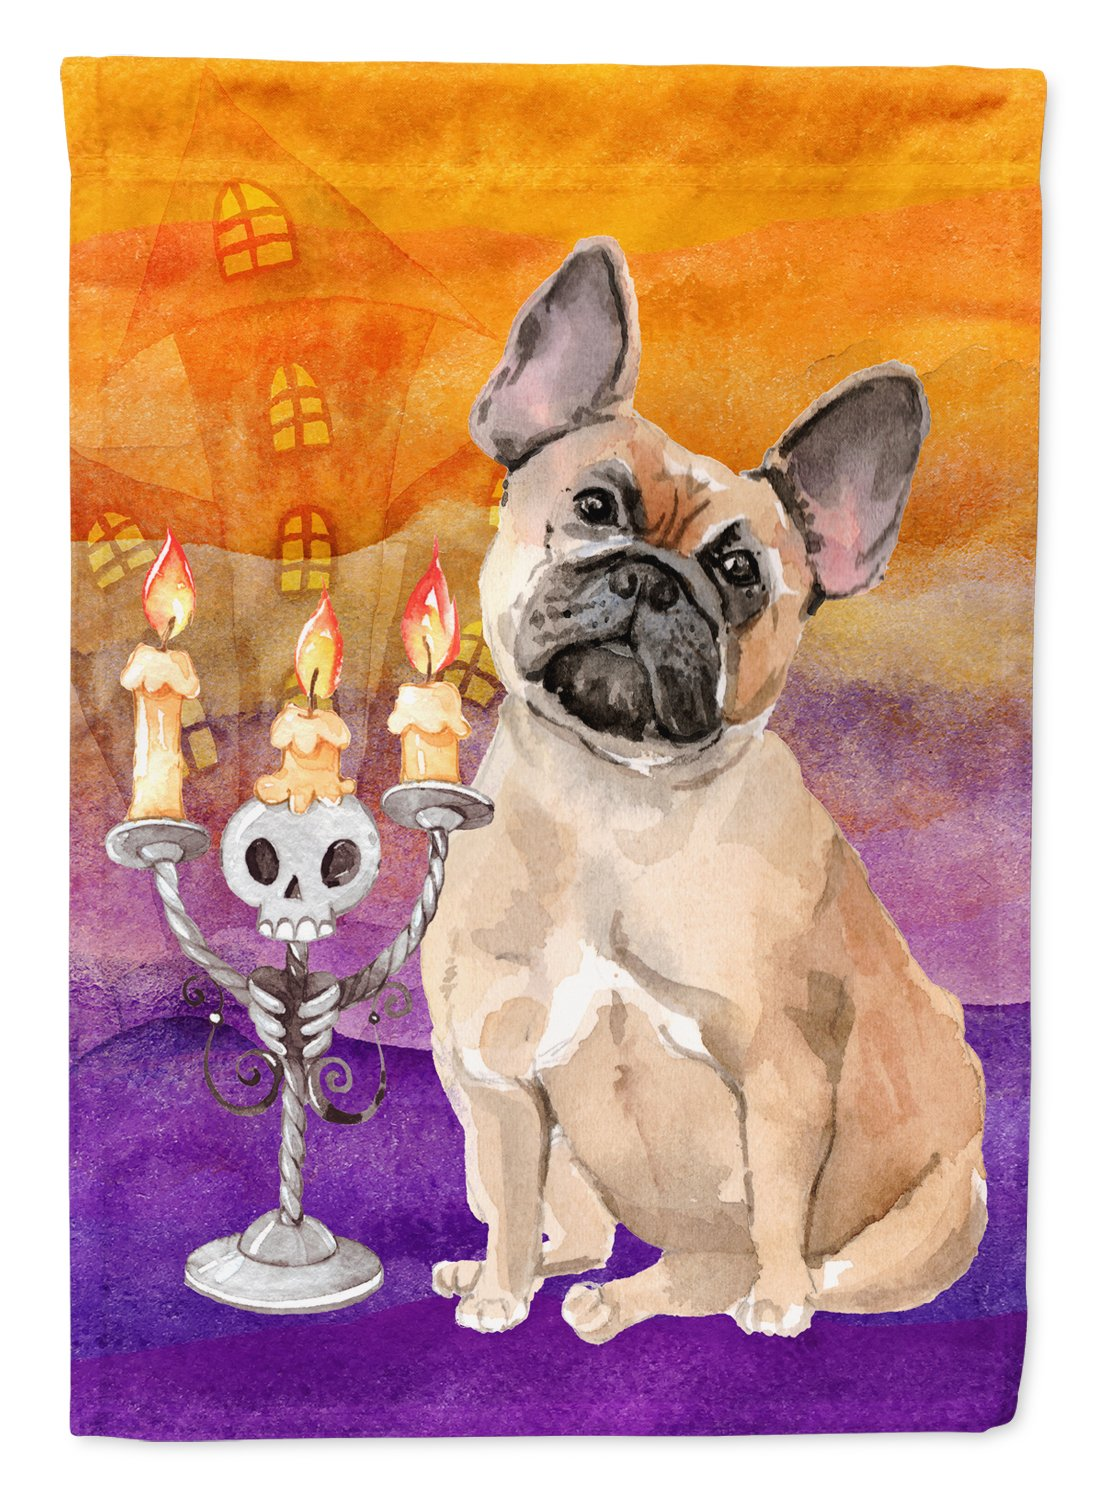 Hallween Fawn French Bulldog Flag Garden Size CK3216GF by Caroline's Treasures